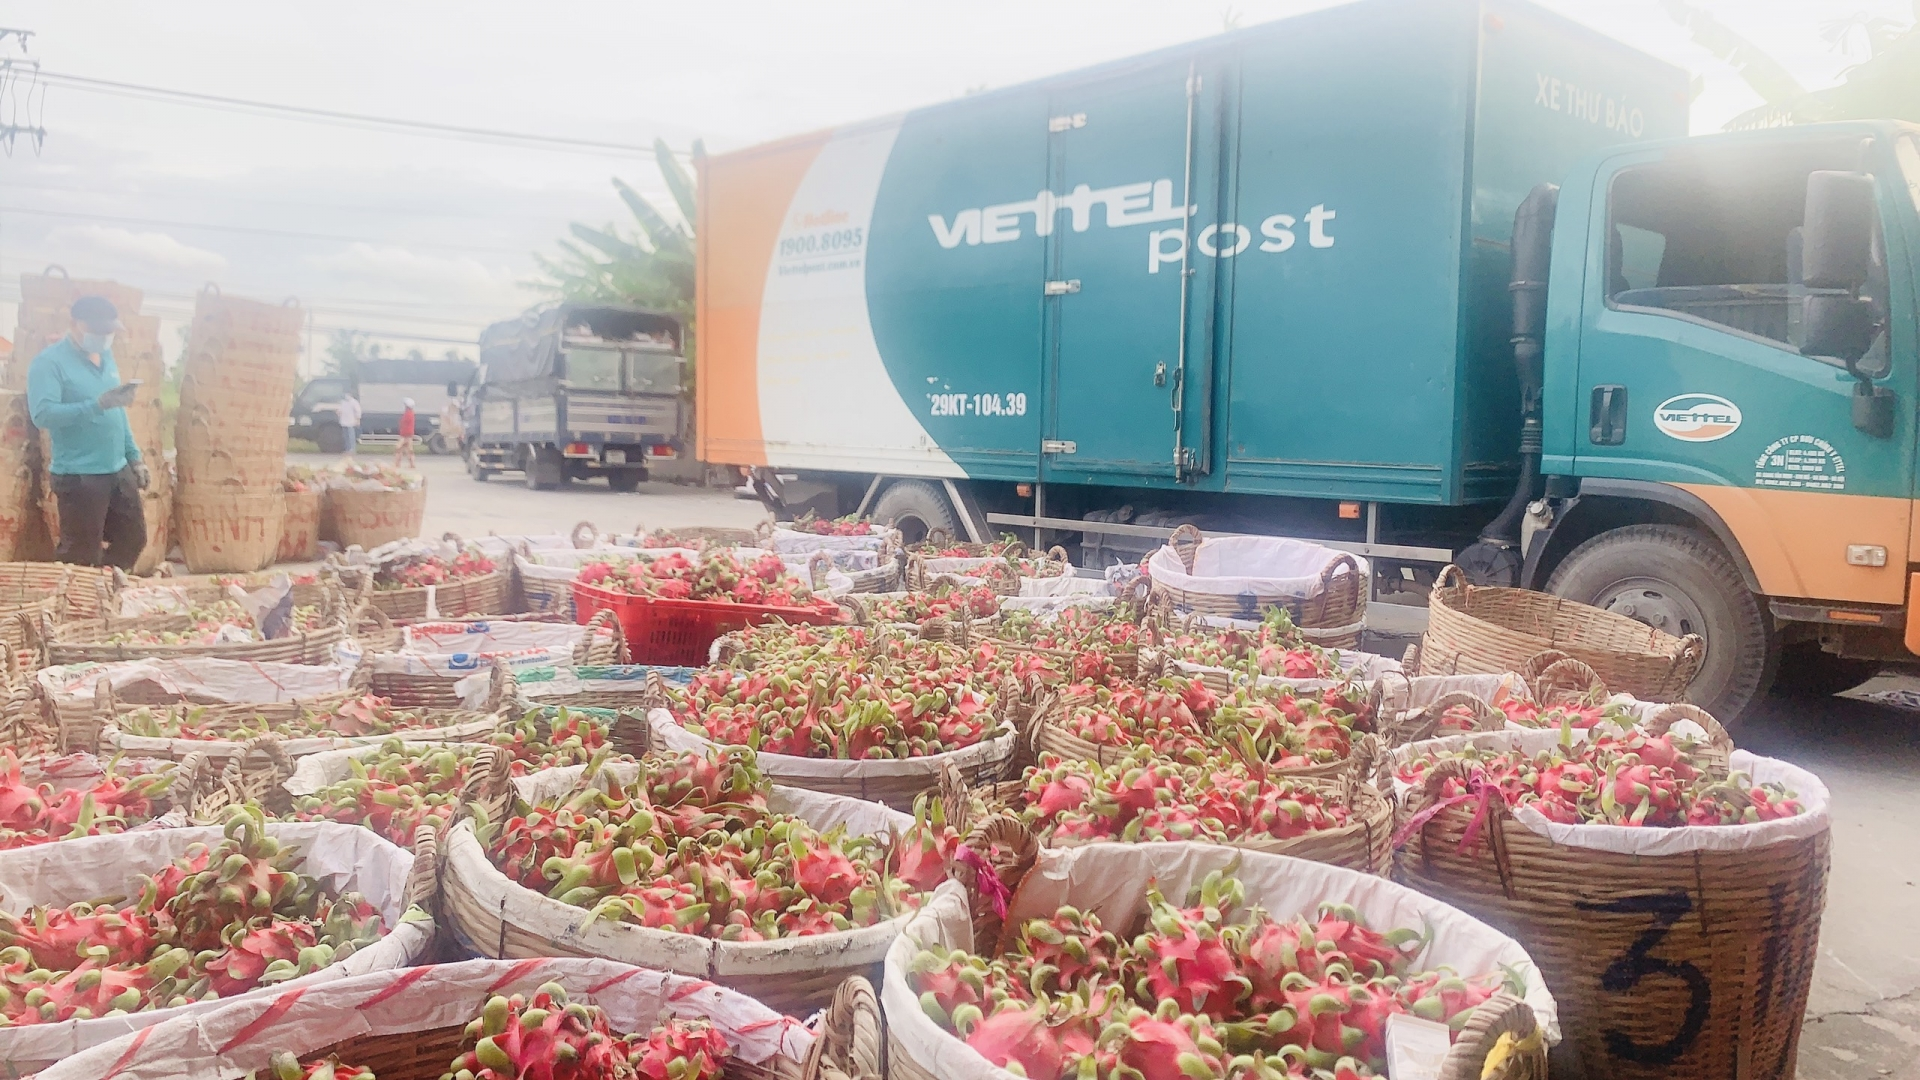 diversified solutions implemented to support farm produce sales